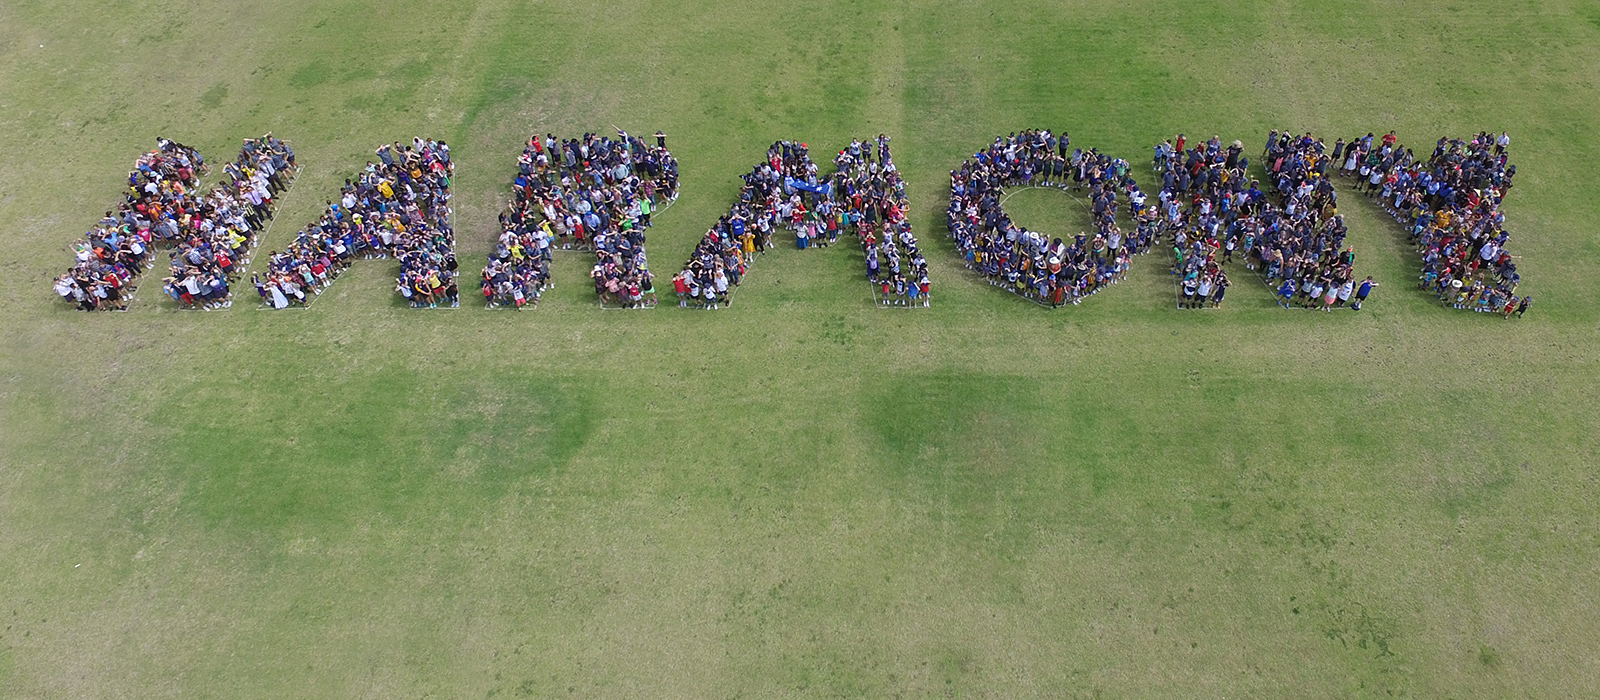 SVACS students celebrate Harmony Day on 21 March 2016